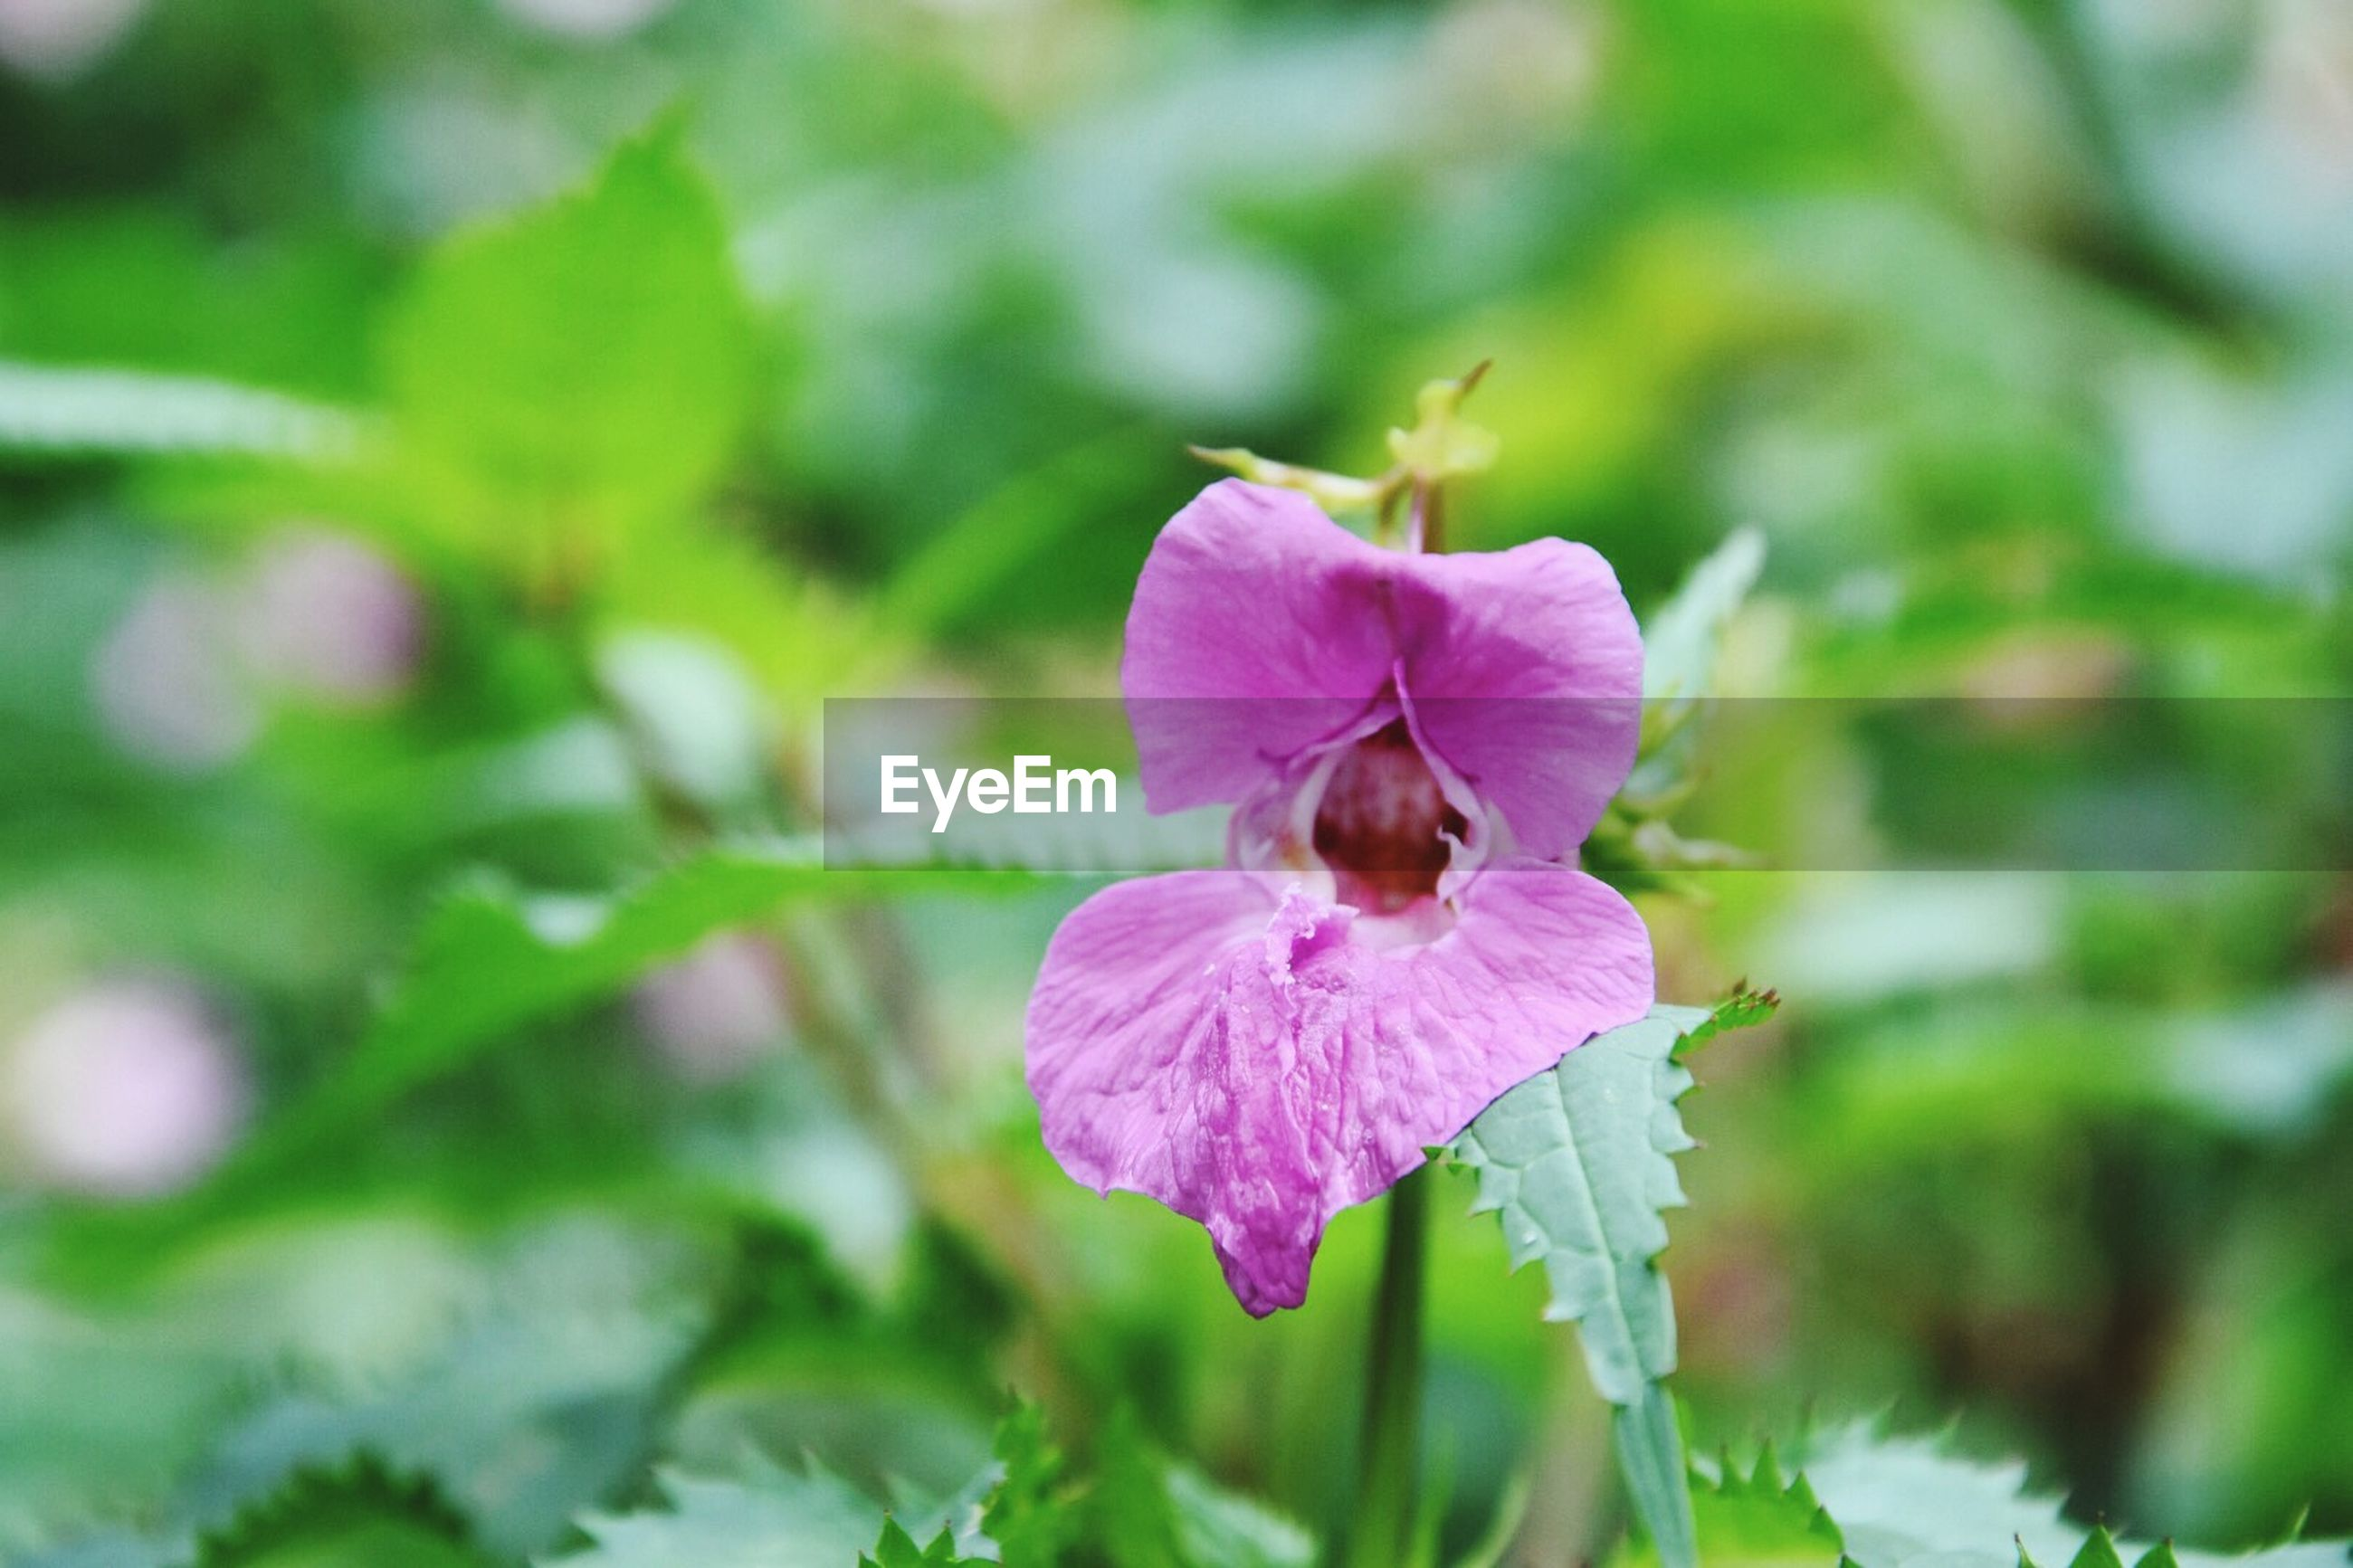 flower, petal, freshness, fragility, flower head, growth, close-up, beauty in nature, purple, focus on foreground, blooming, nature, pink color, plant, single flower, in bloom, stamen, pollen, outdoors, day